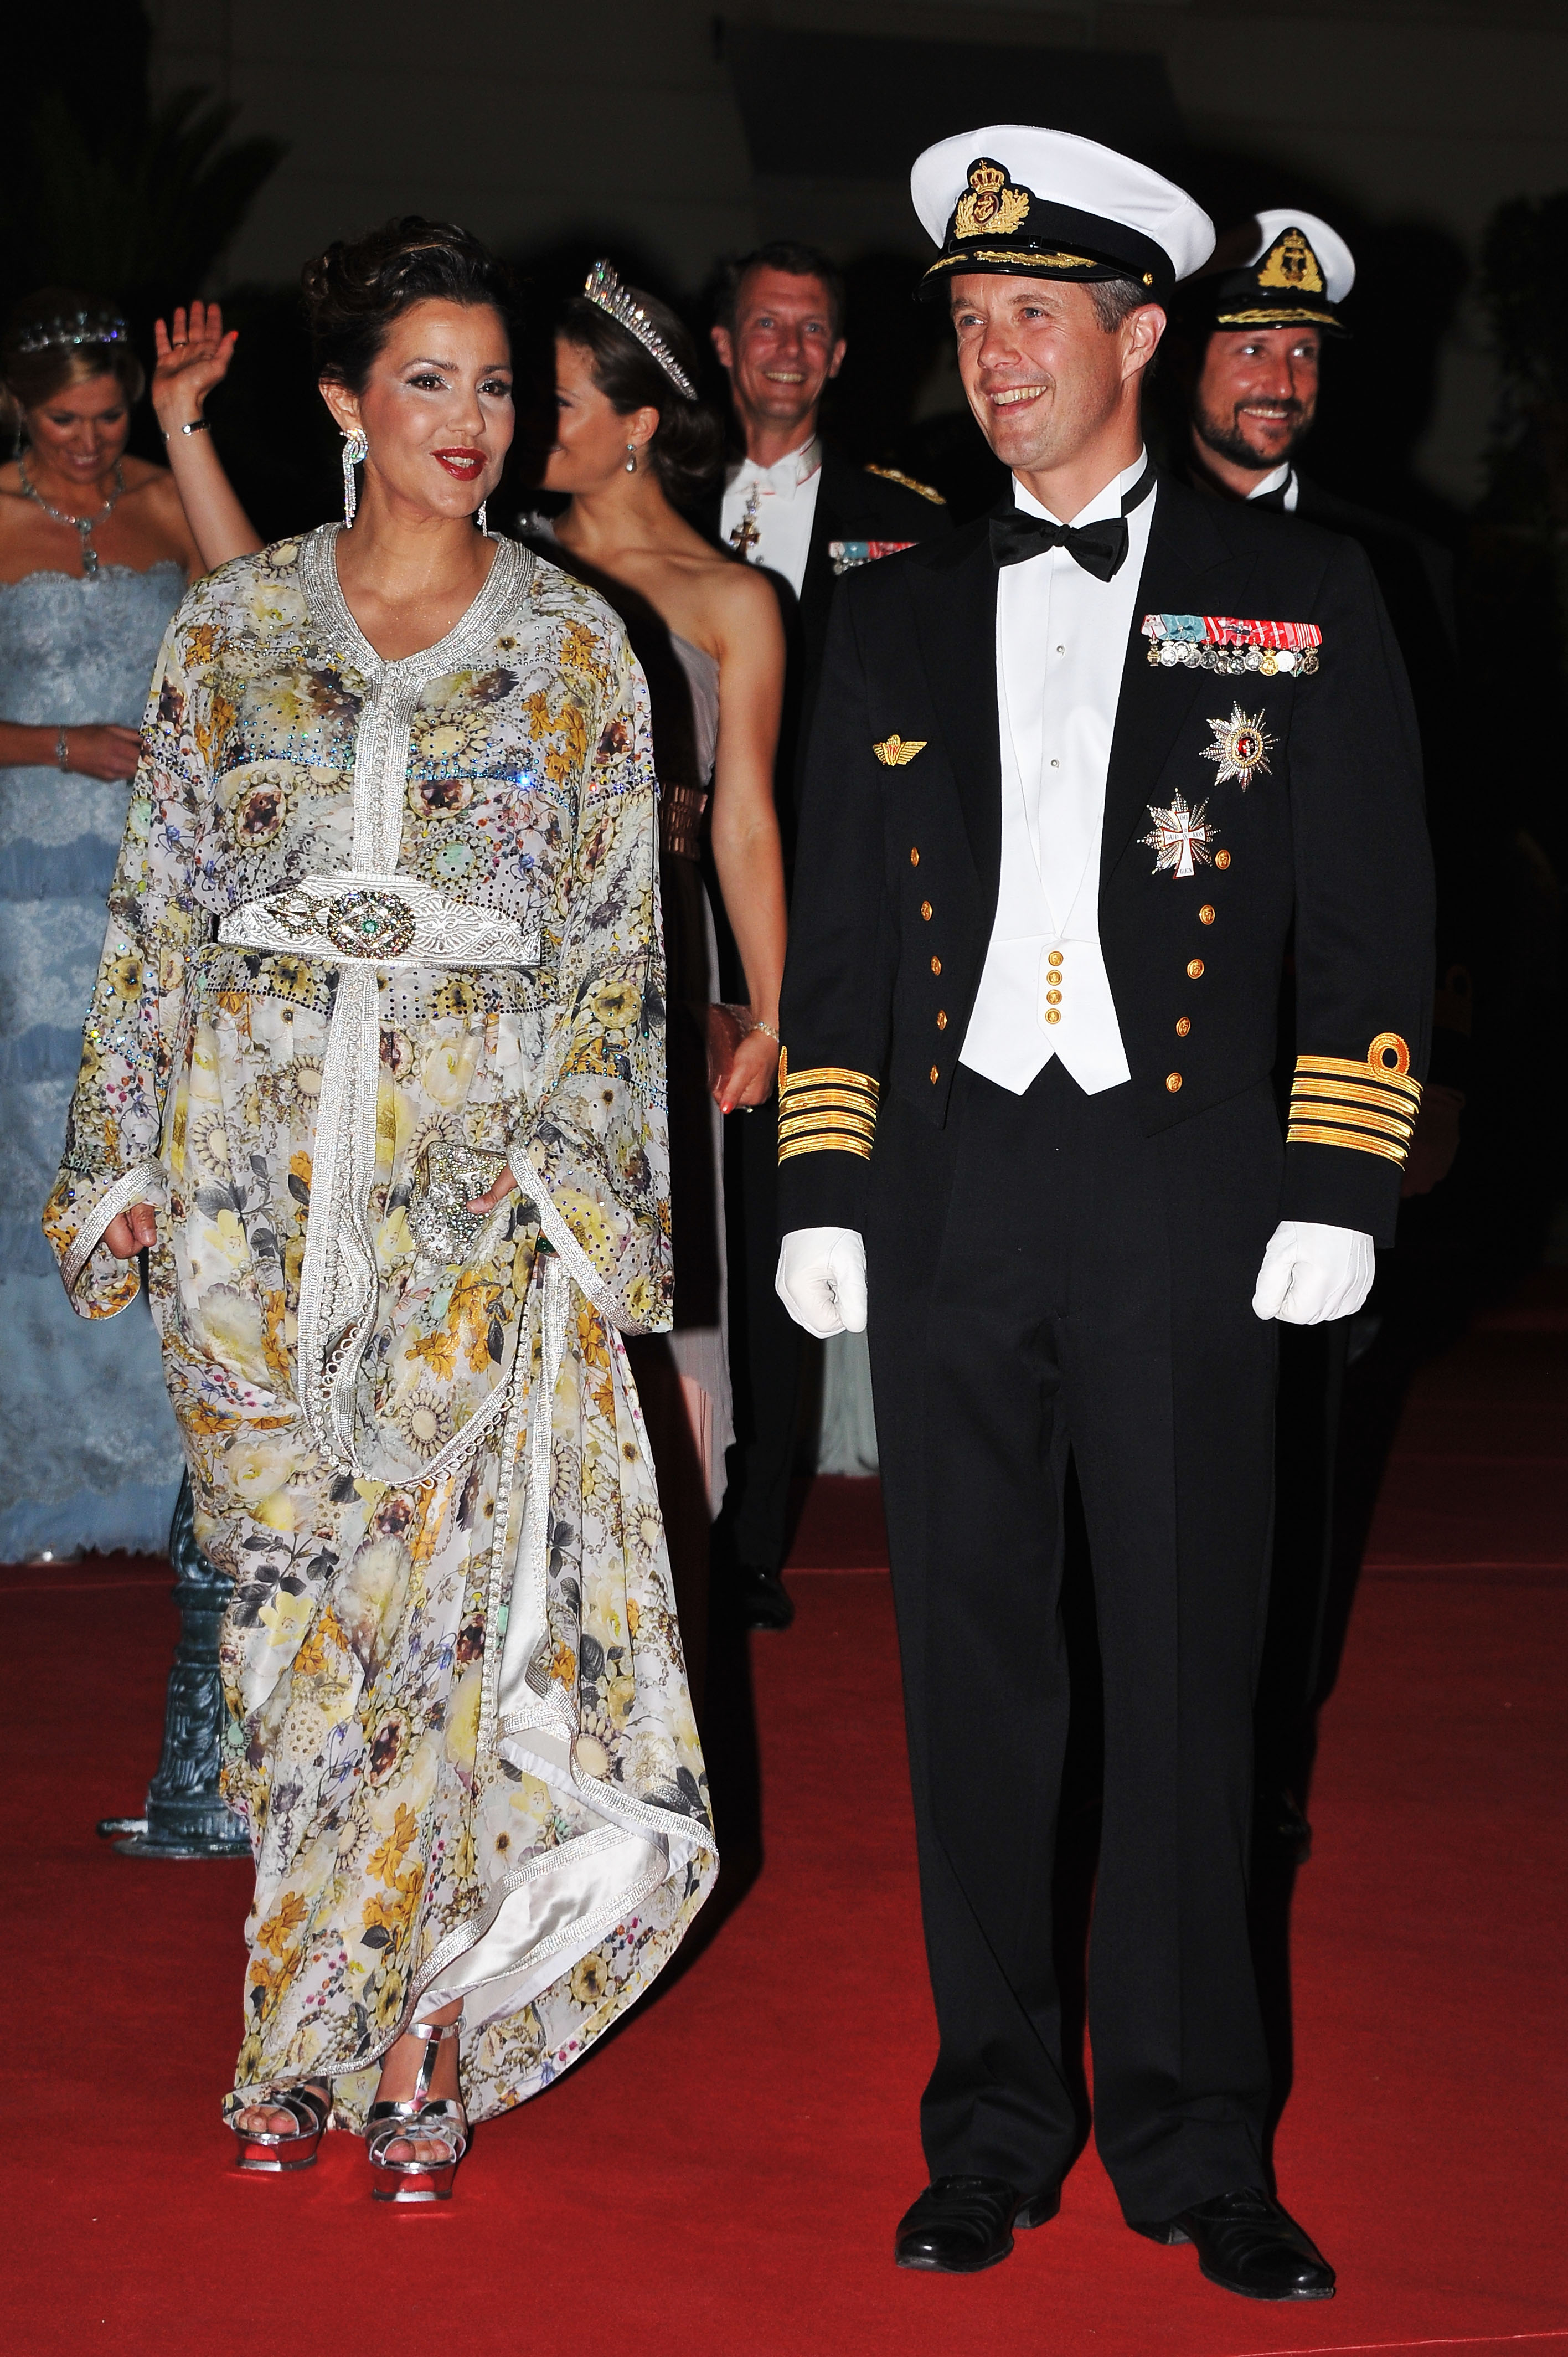 HRH Crown Prince Frederik of Denmark attended a dinner at Opera terraces after the religious wedding ceremony of Prince Albert II of Monaco and Princess Charlene of Monaco.